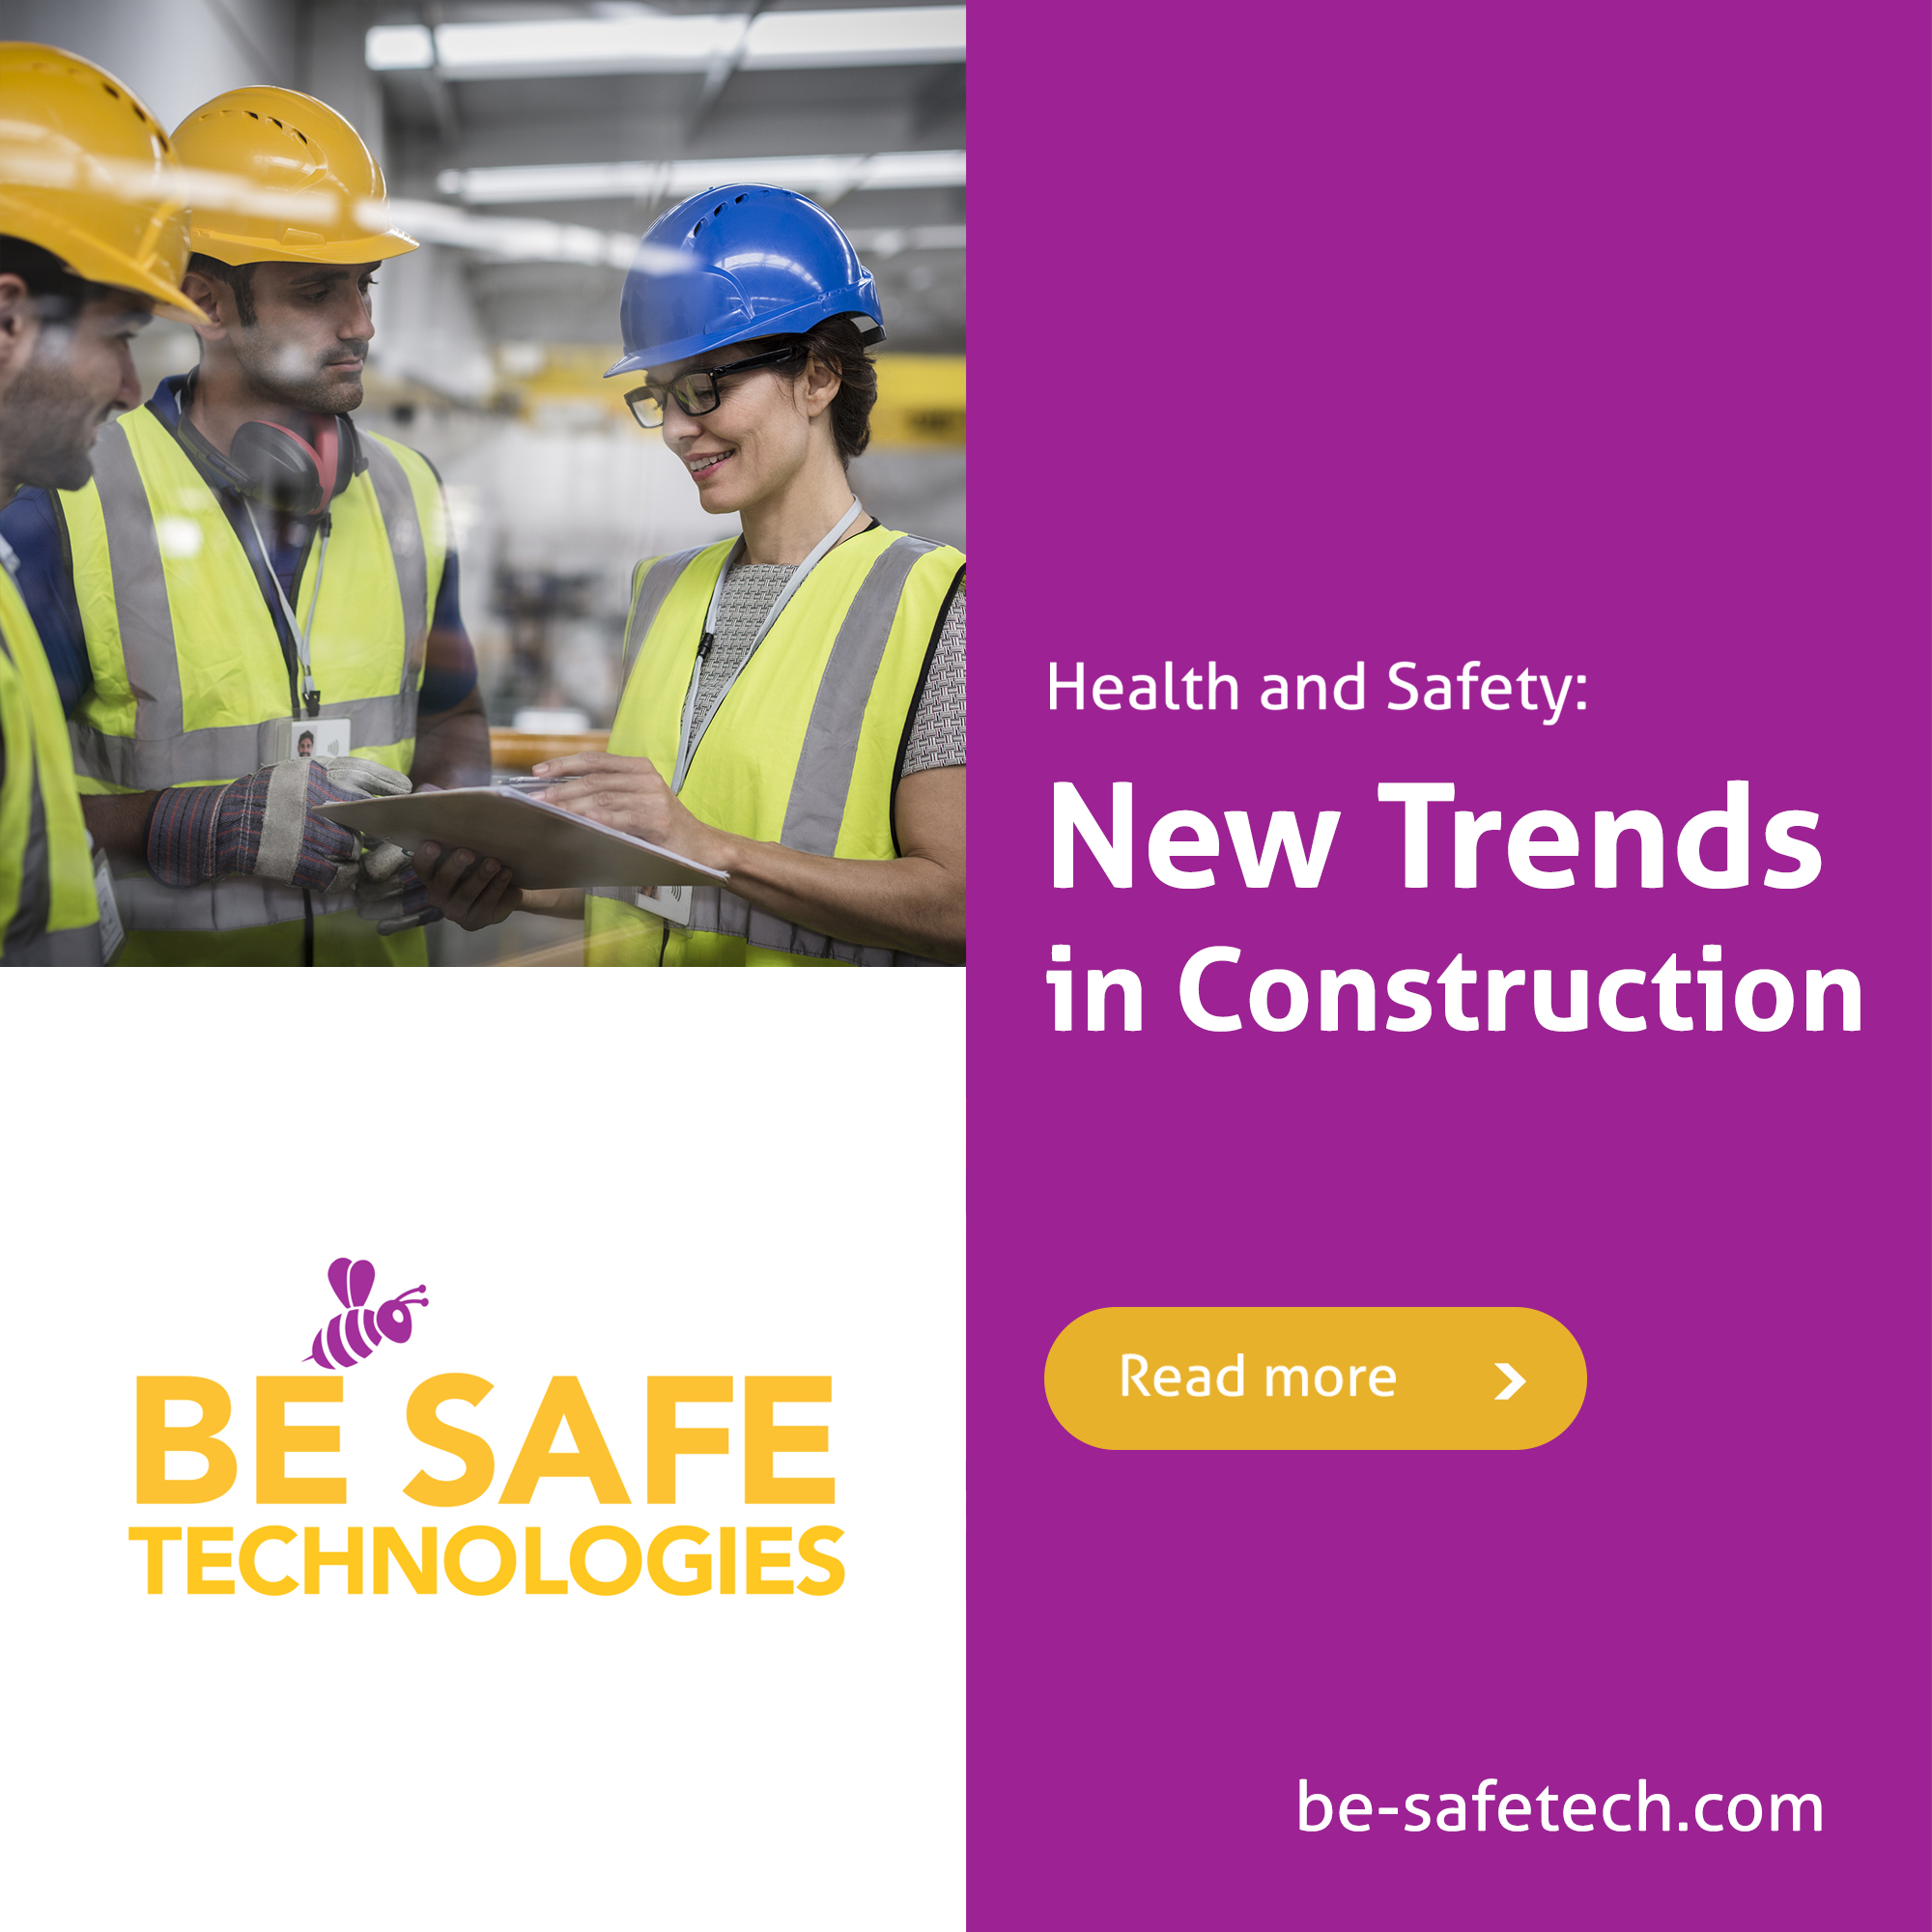 New Trends in Construction